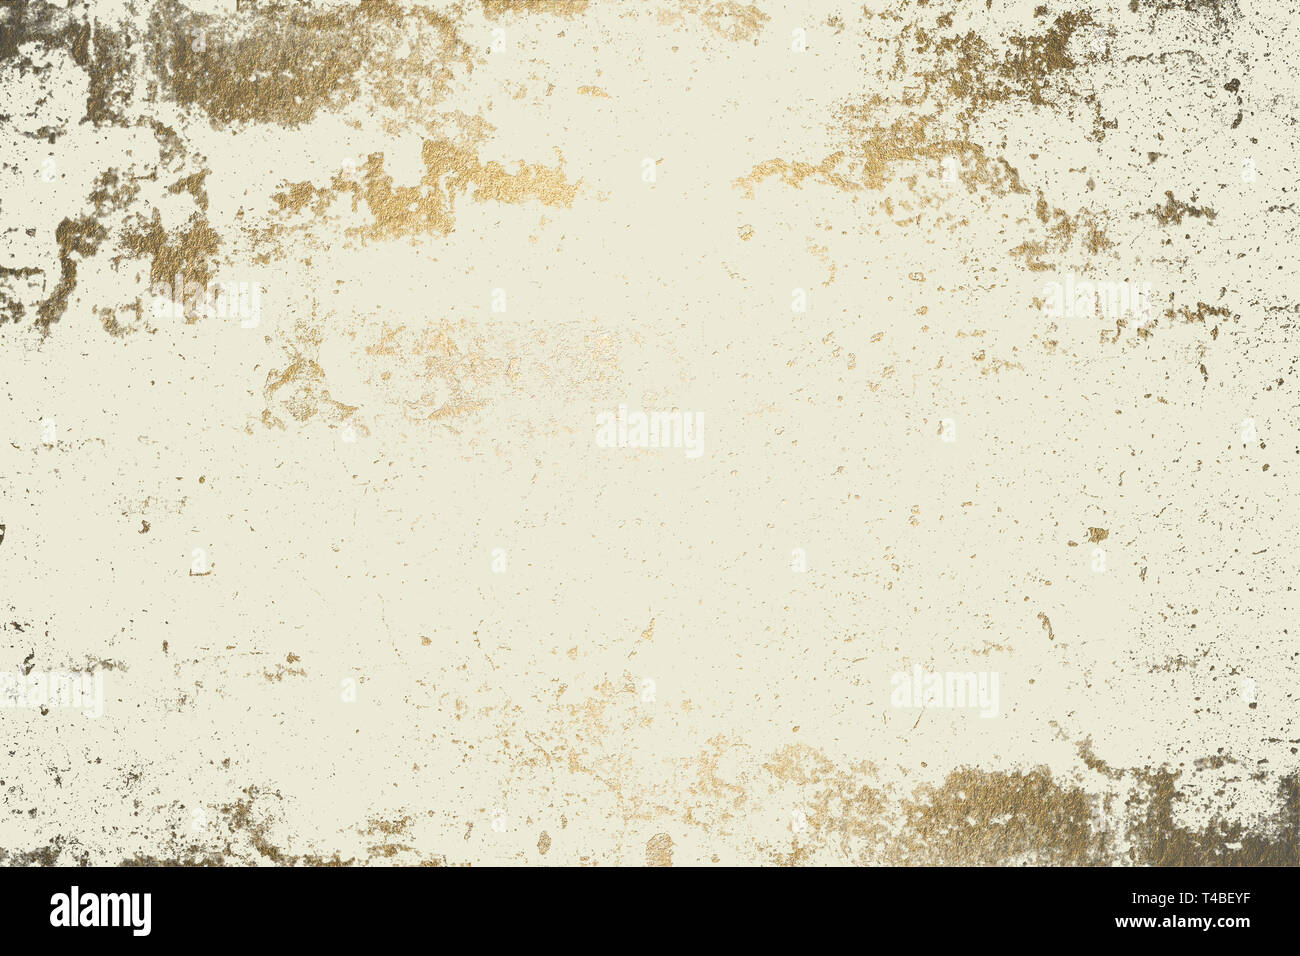 Luxury Texture With Splash Gold Light Color Background